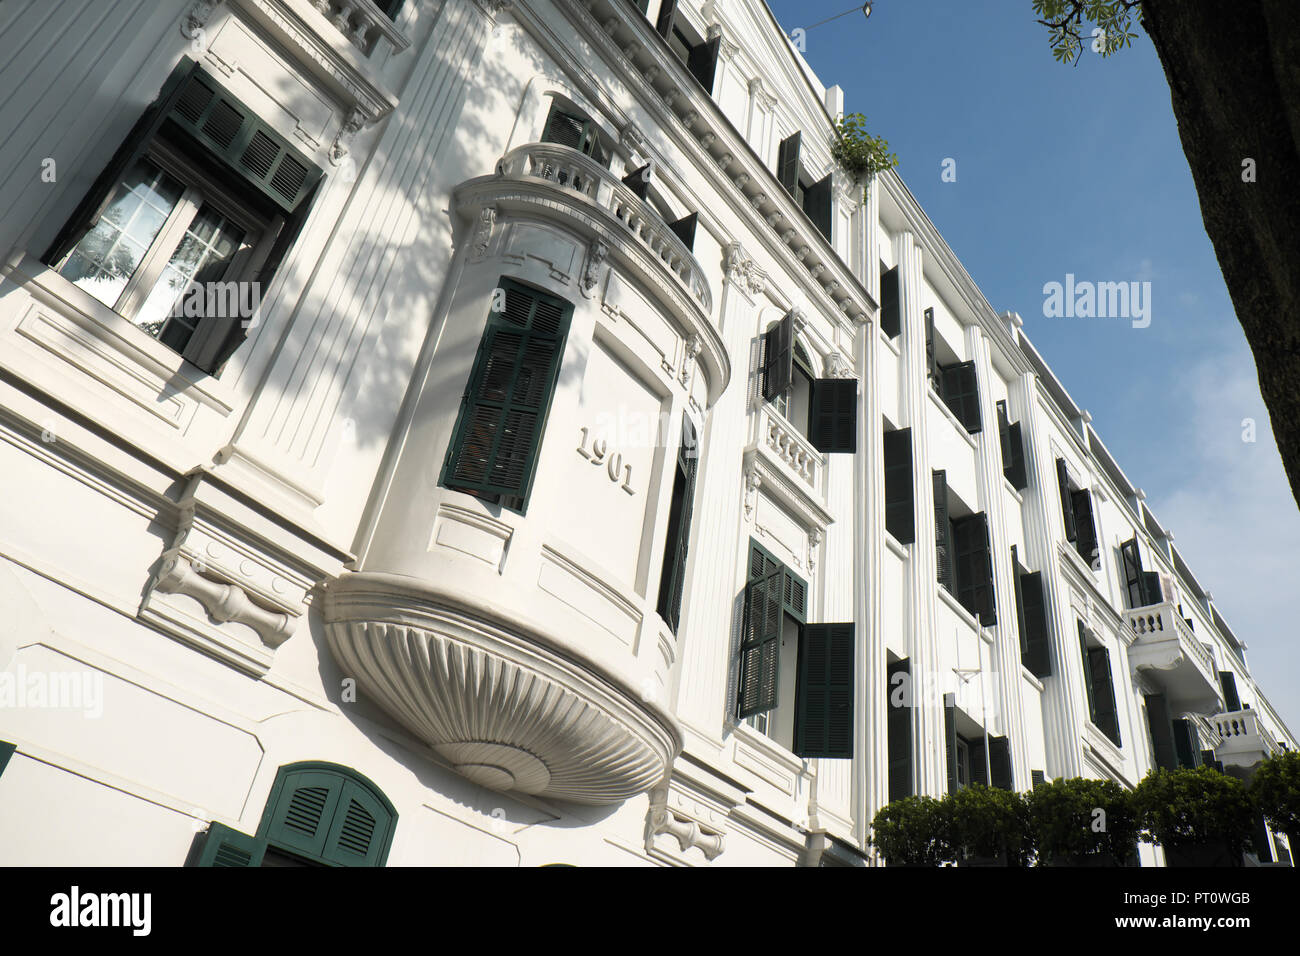 Hanoi Vietnam - the colonial built Hotel Metropole dates from 1901 - Stock Image